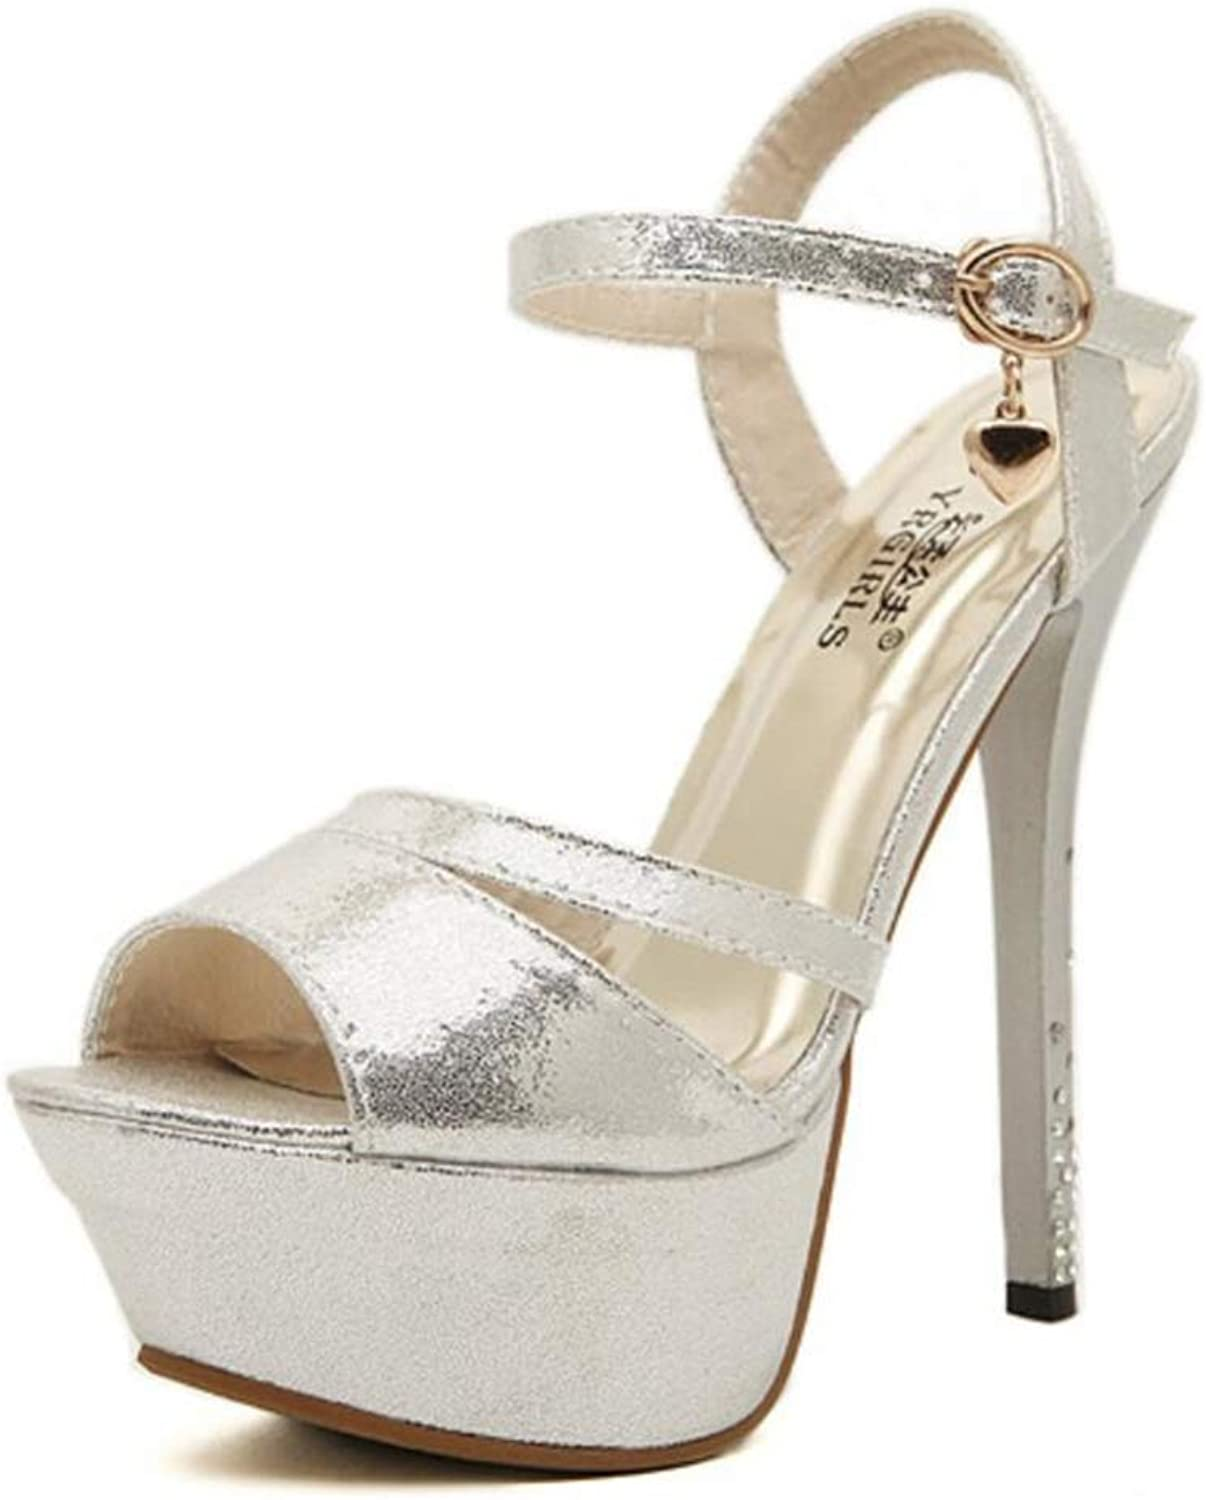 Shiney High Heel Women's Sandals Princess Peep Toe Waterproof Platform Stiletto Heels Party